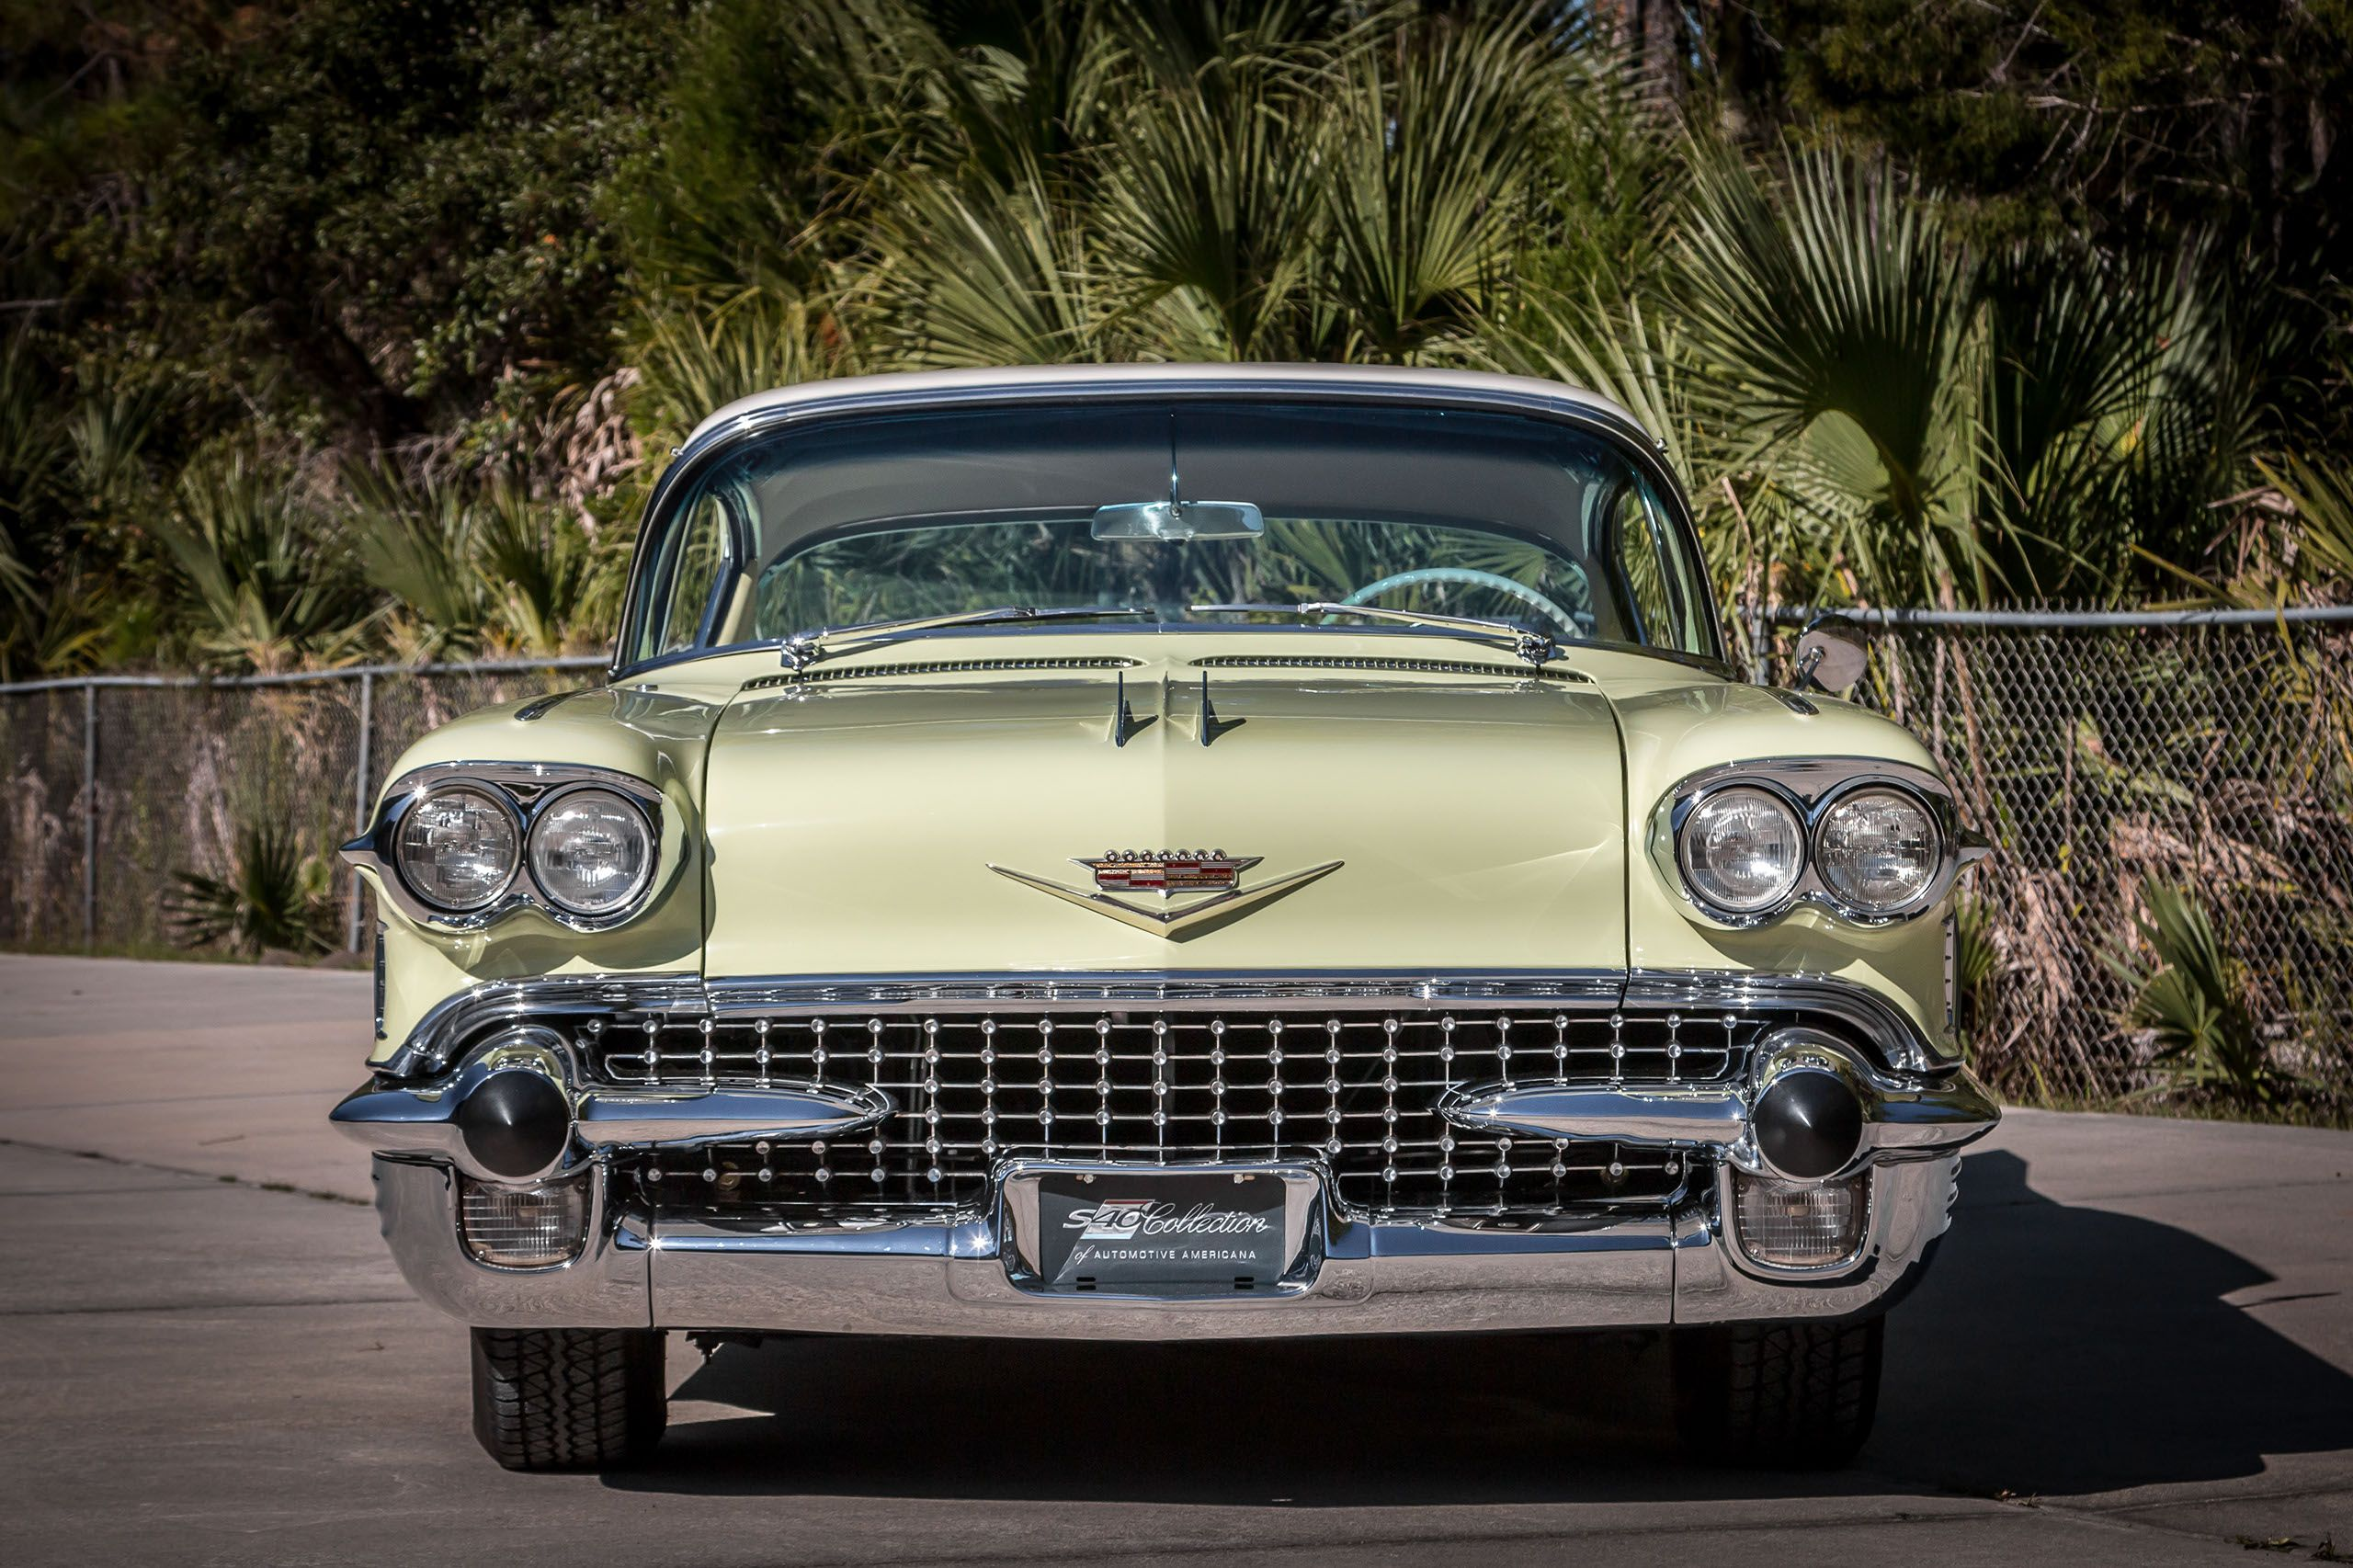 Cool Review About 1968 Cadillac with Amazing Gallery